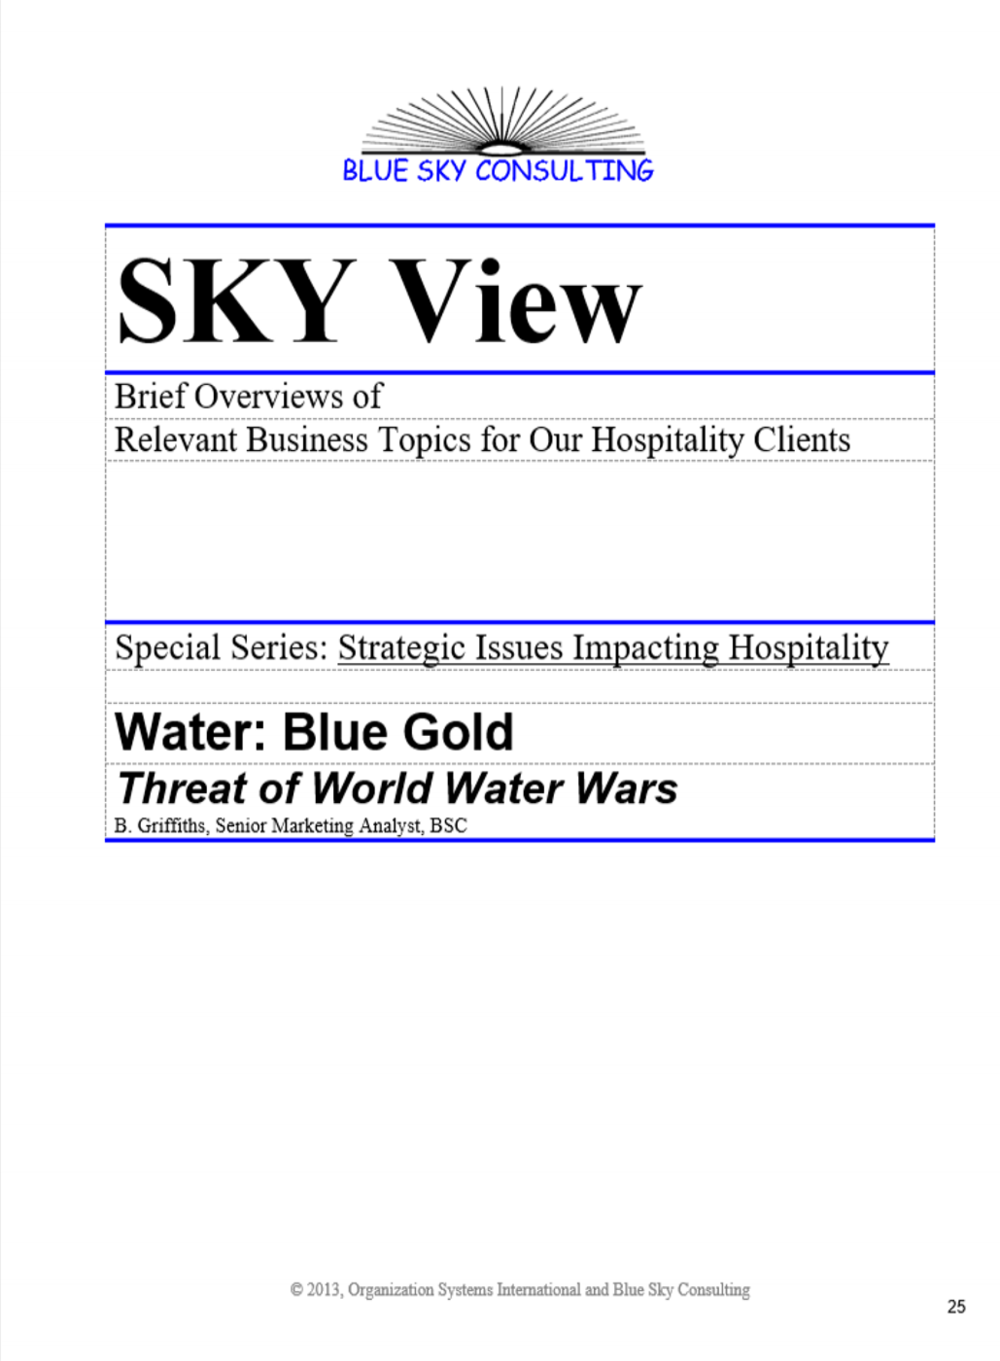 Sample Innoveren Memo: Article about Water Scarcity